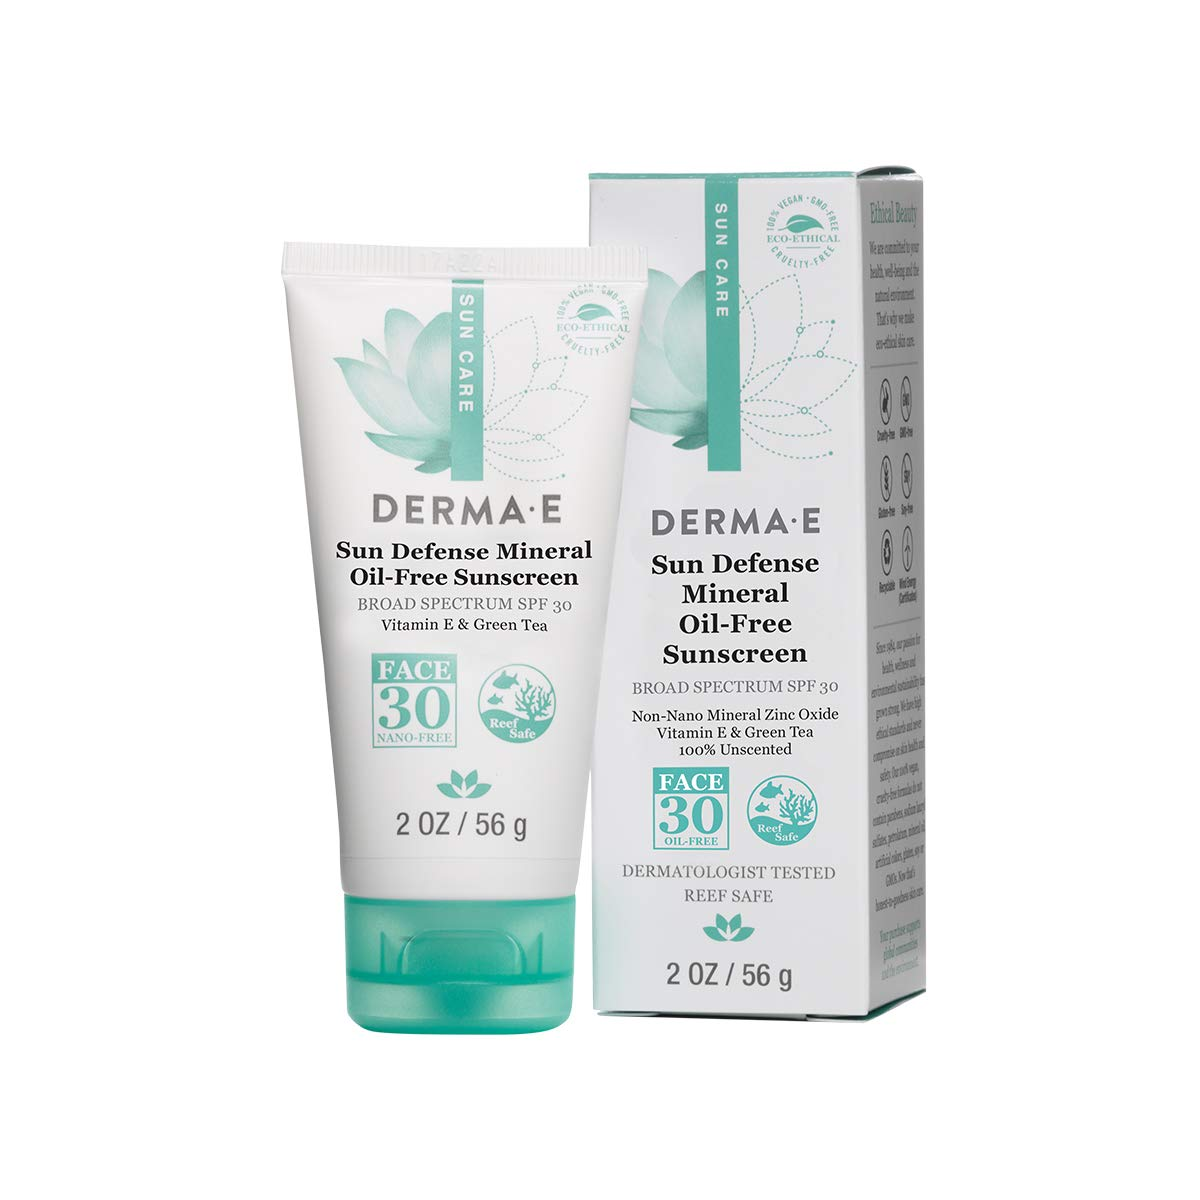 The DERMA E Natural Mineral Sunscreen travel product recommended by Vanessa on Pretty Progressive.